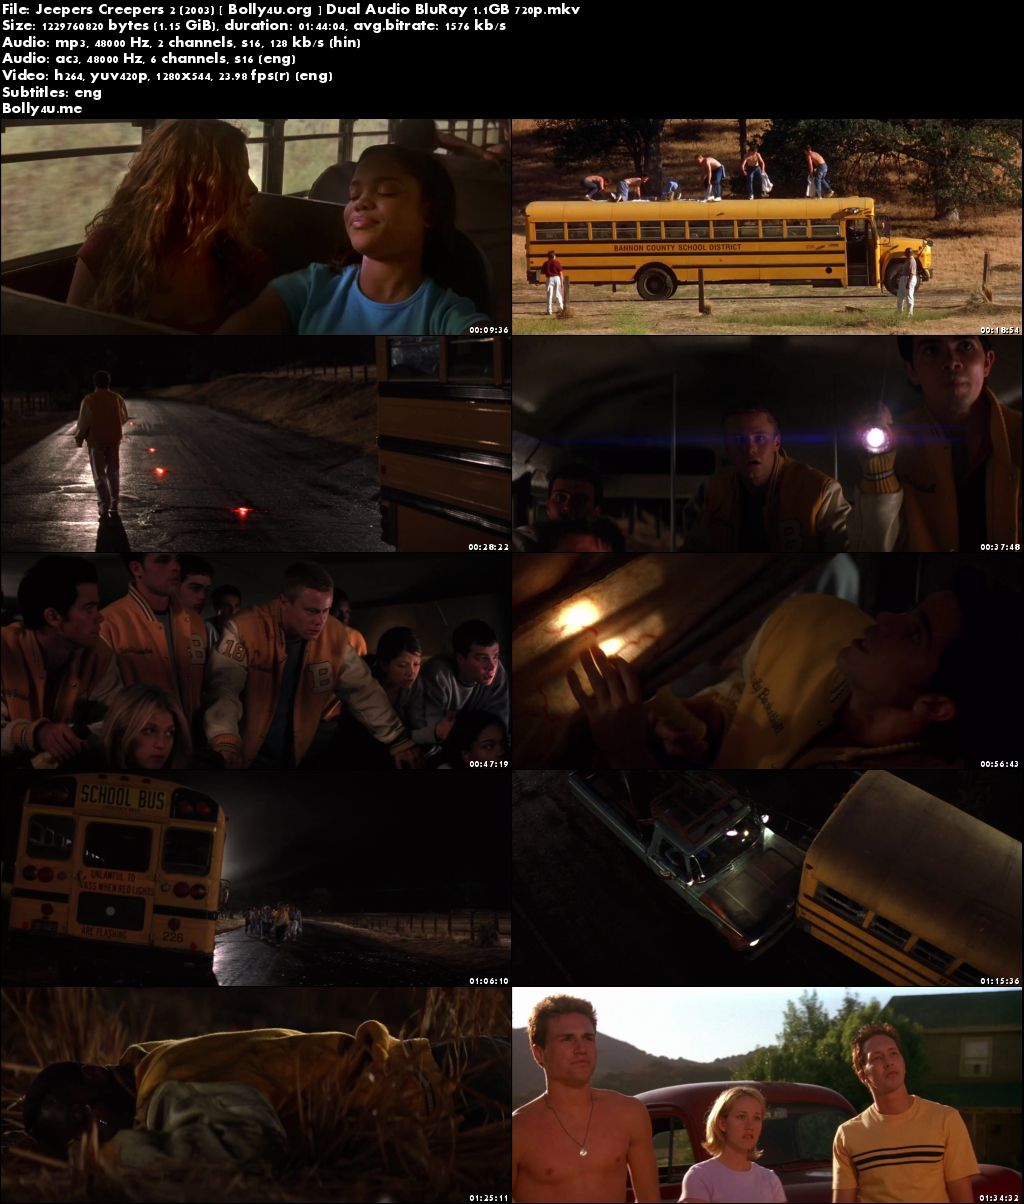 Jeepers Creepers 2 2003 BluRay Hindi Dual Audio 720p Download